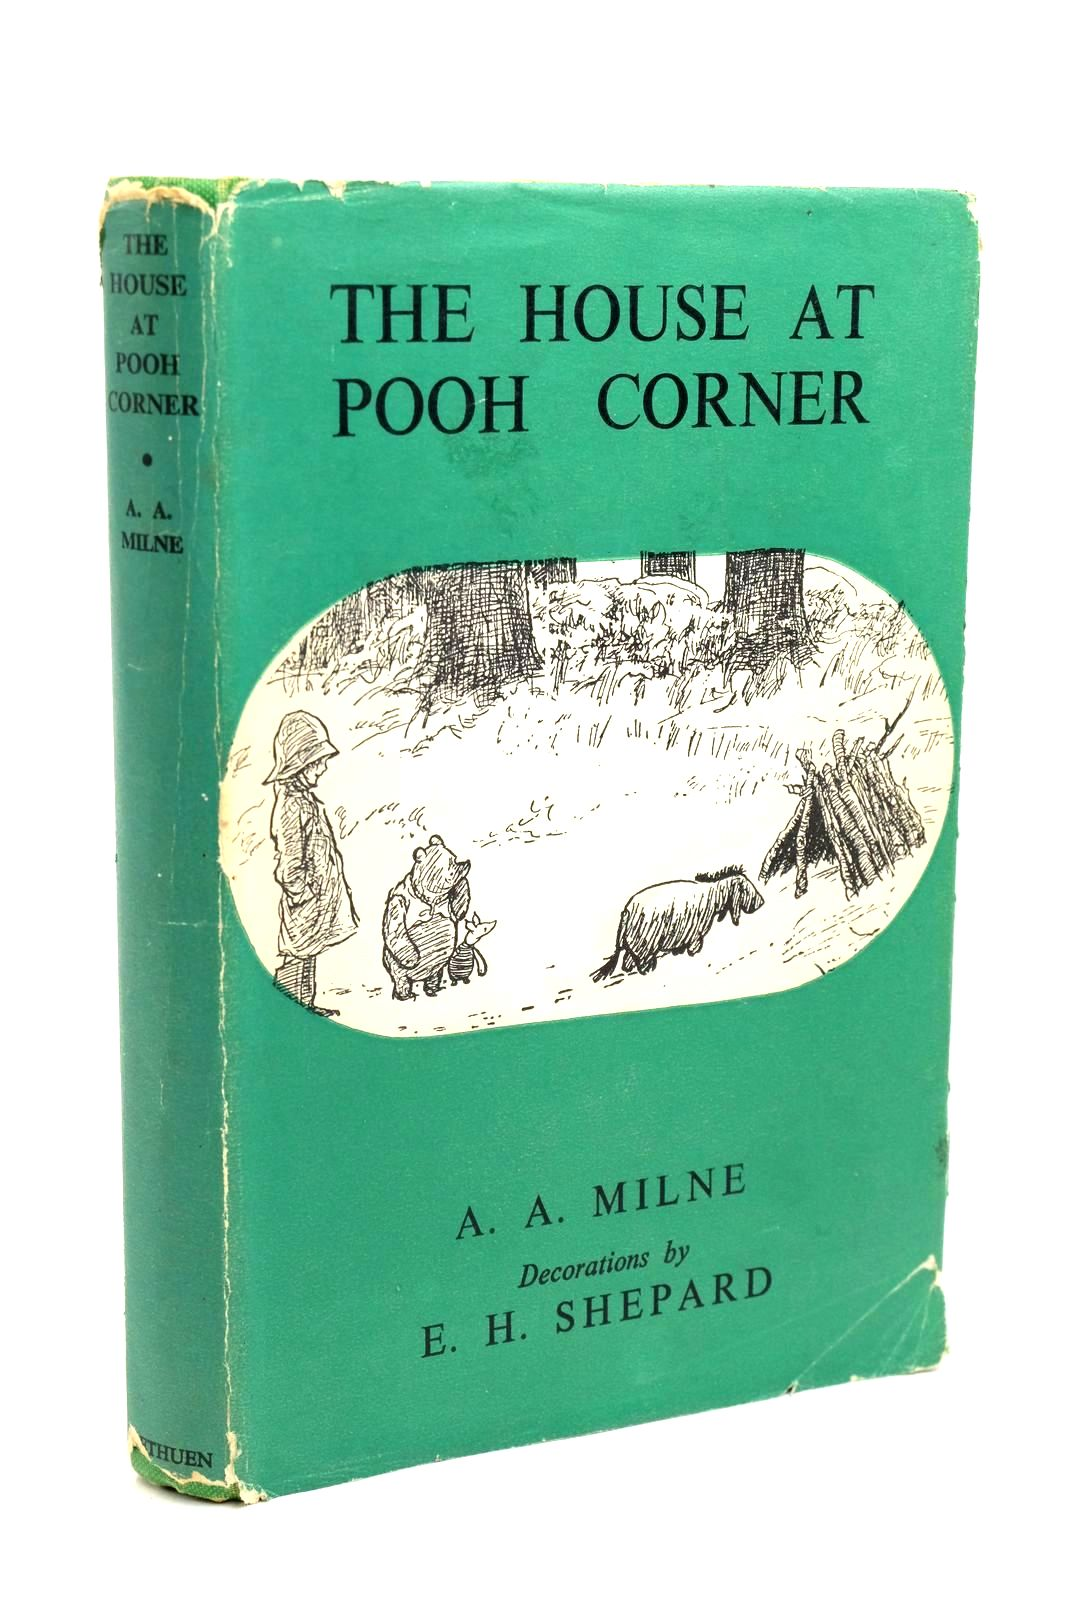 Photo of THE HOUSE AT POOH CORNER written by Milne, A.A. illustrated by Shepard, E.H. published by Methuen & Co. Ltd. (STOCK CODE: 1321439)  for sale by Stella & Rose's Books